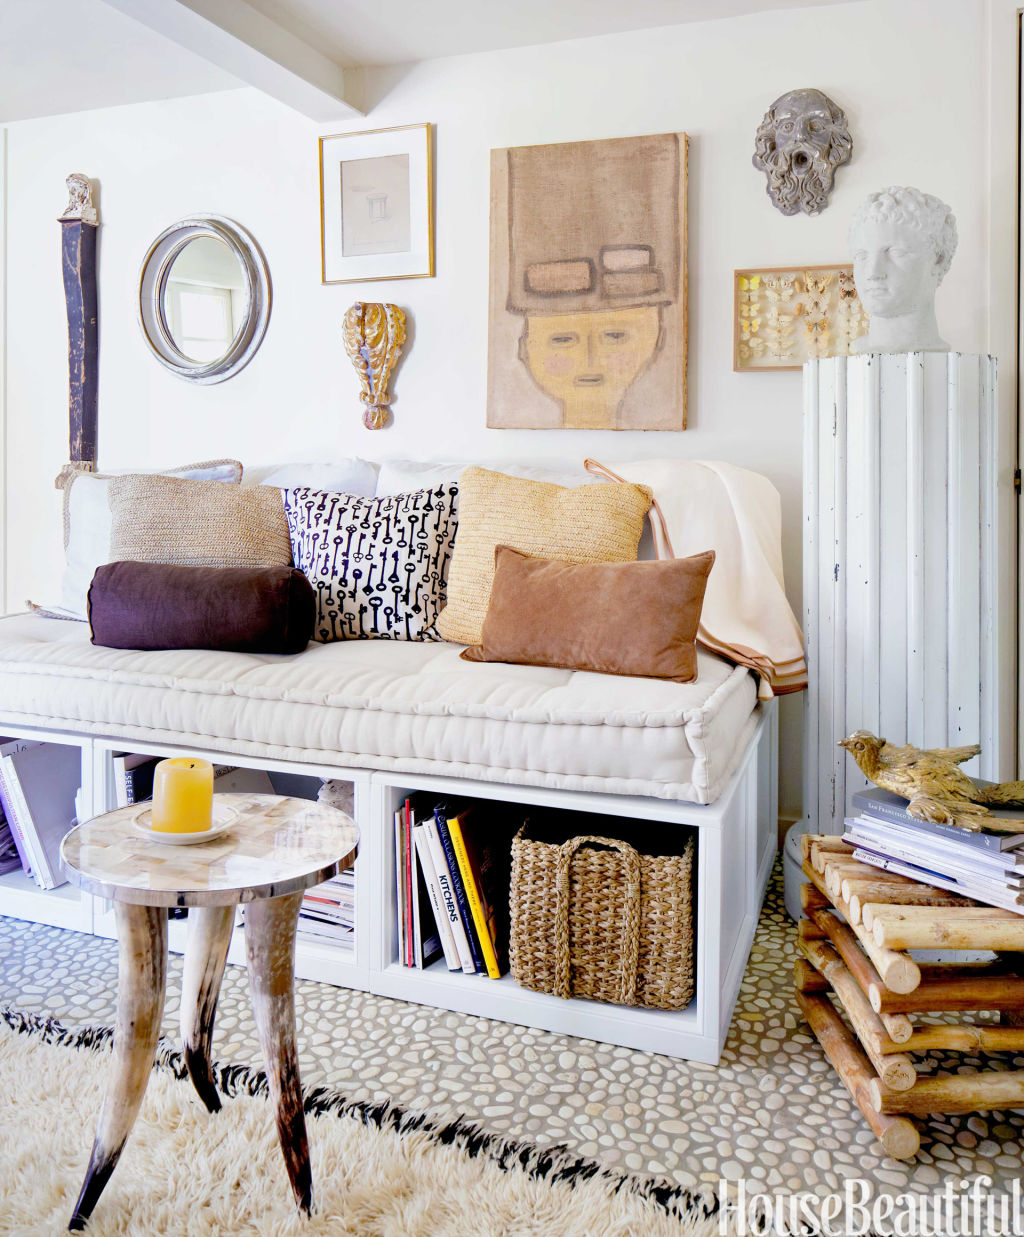 Making Space In A Small Bedroom Small Space Design Ideas How To Make The Most Of A Small Space